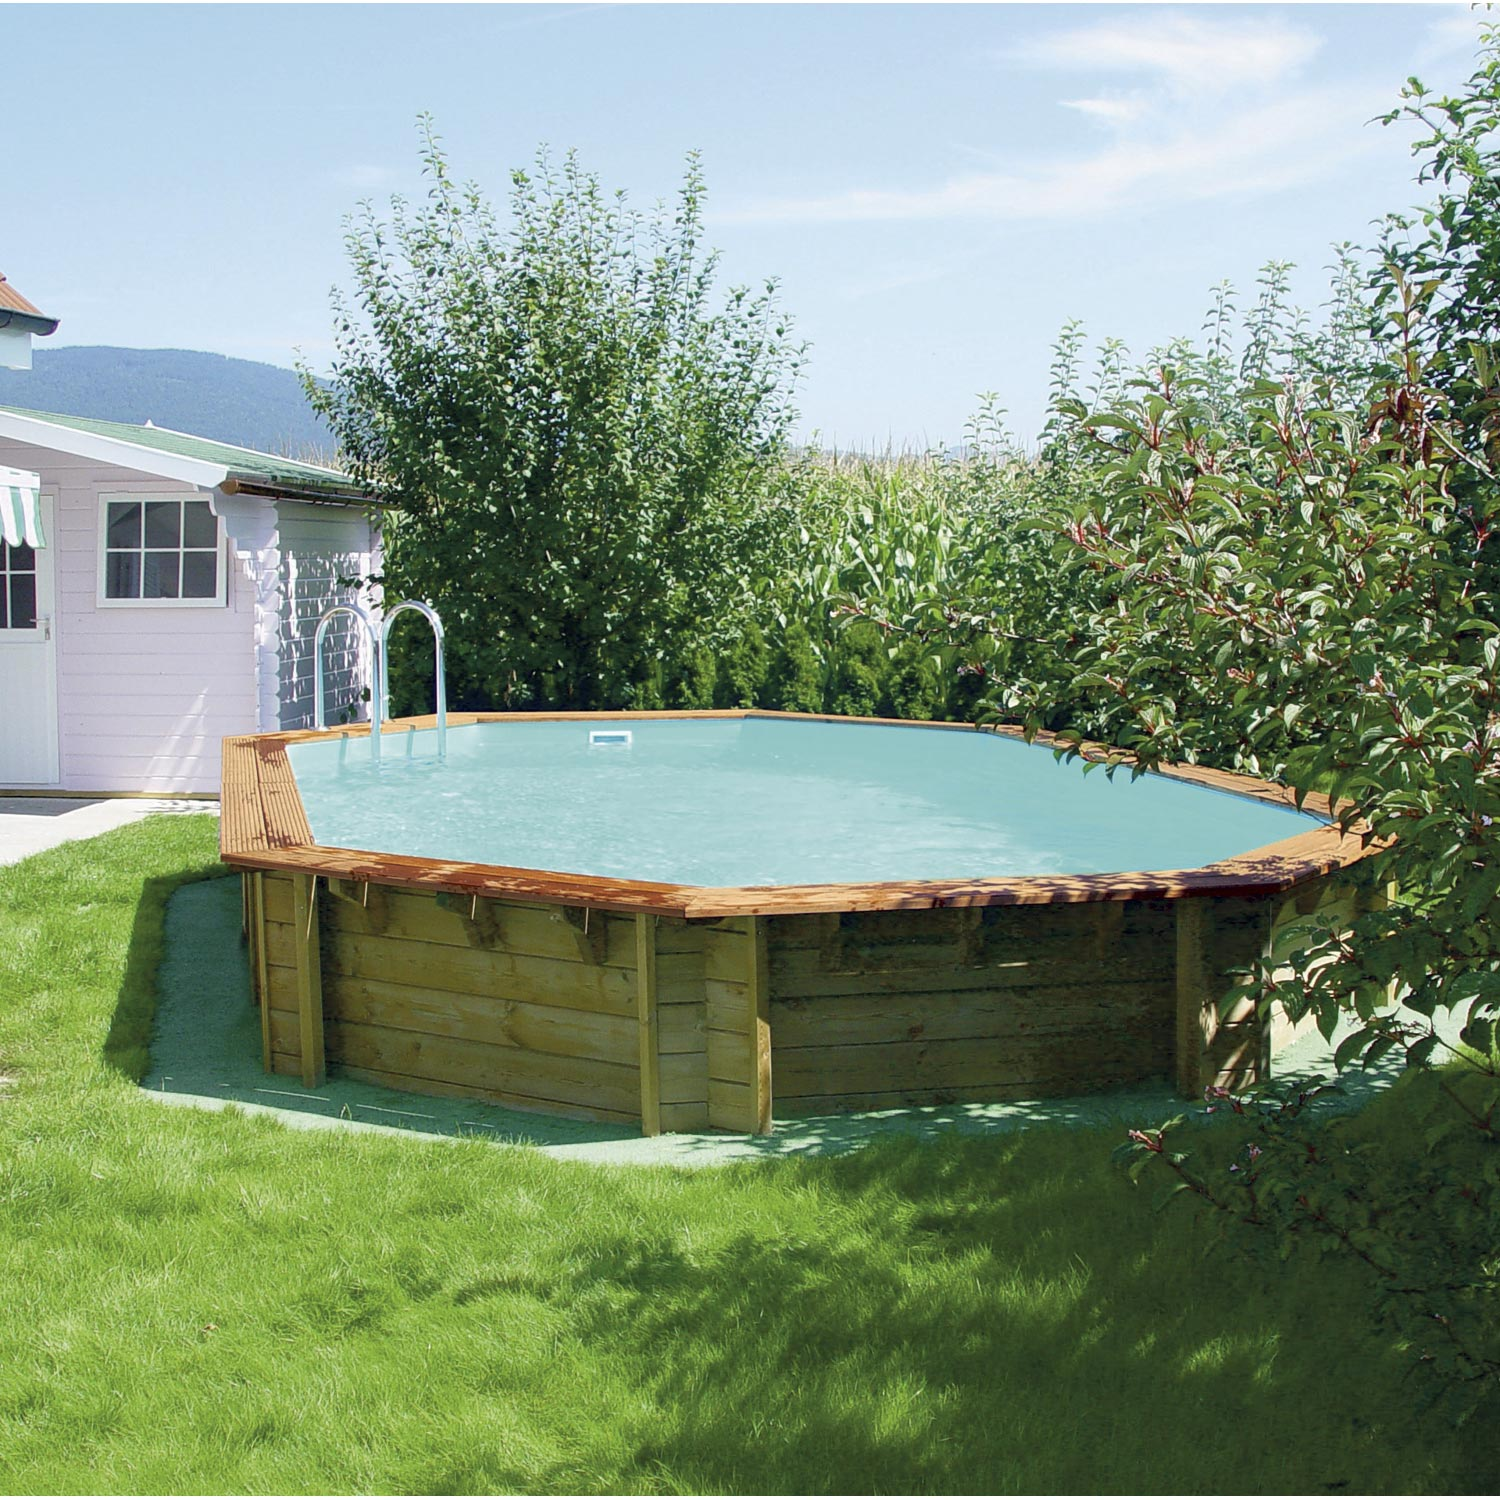 Piscine hors sol bois odyssea l 8 4 x l x h m for Piscine hors sol imposable